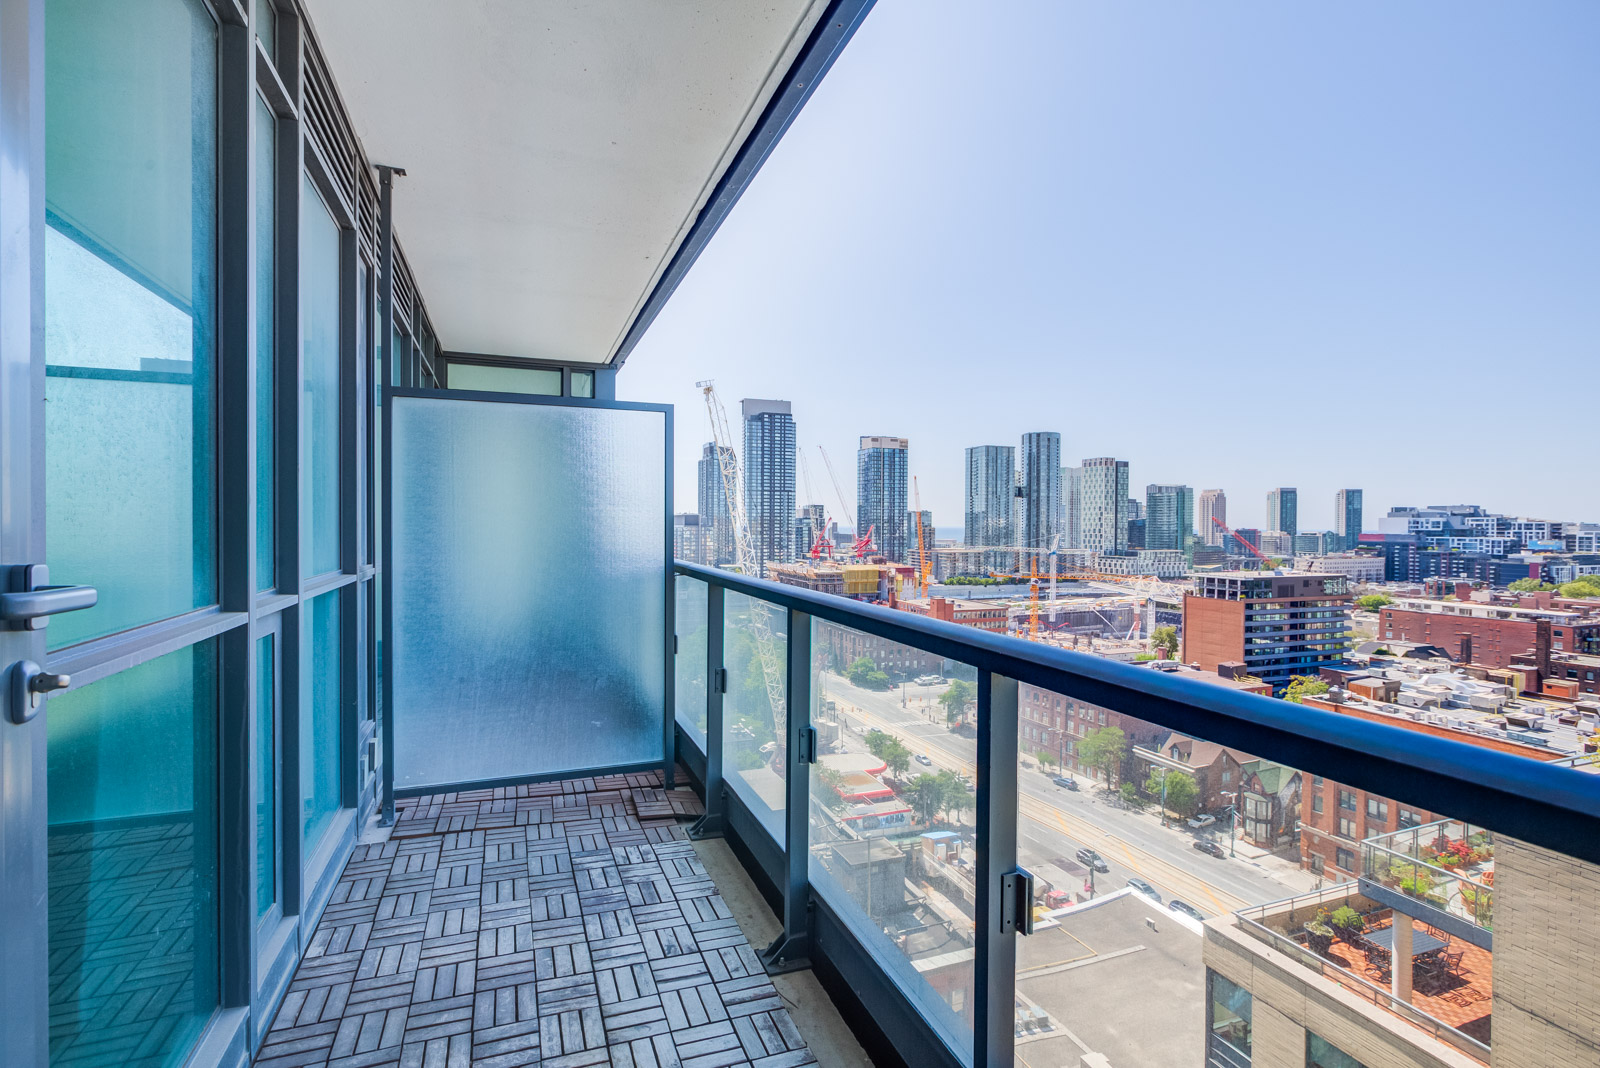 Balcony with glazed divider, glass panels and tiled floors overlooking King West in the Entertainment District.